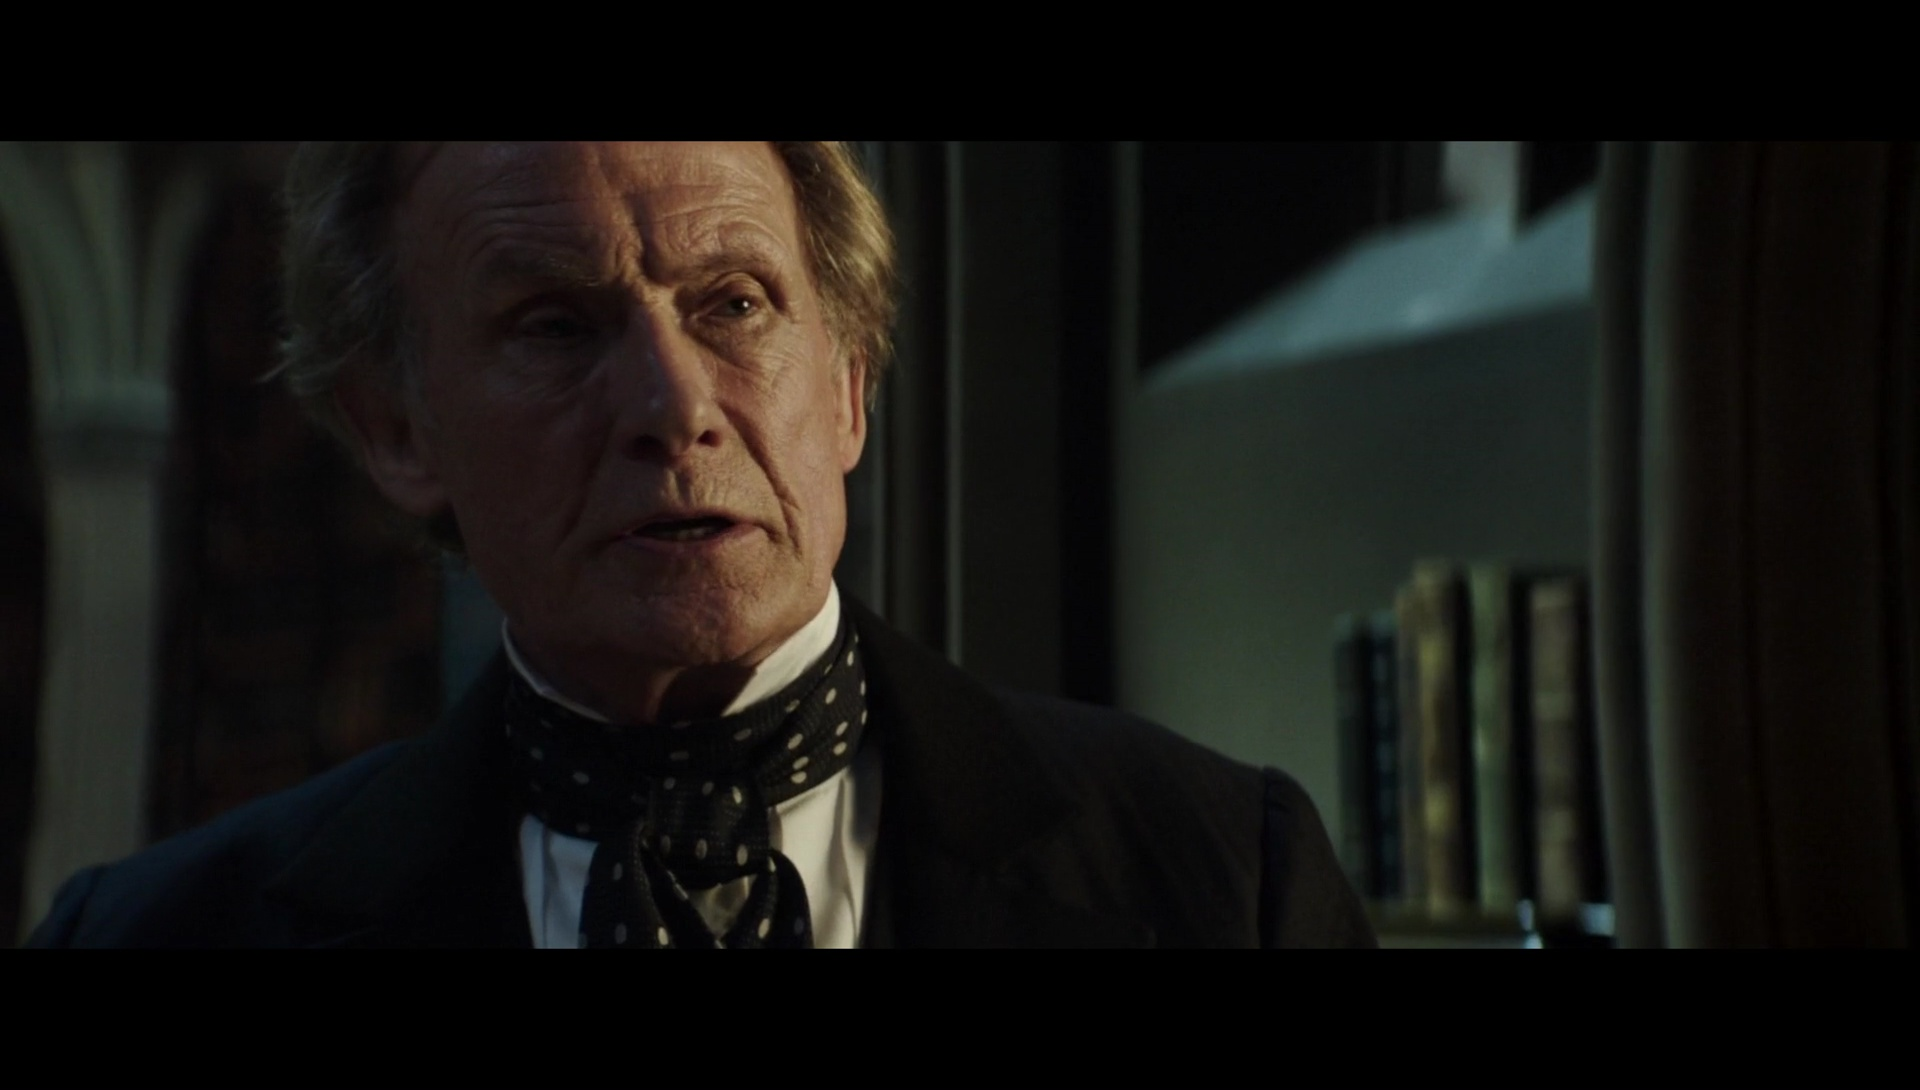 The Limehouse Golem 1080p Cas-Ing 5.1 (2016)